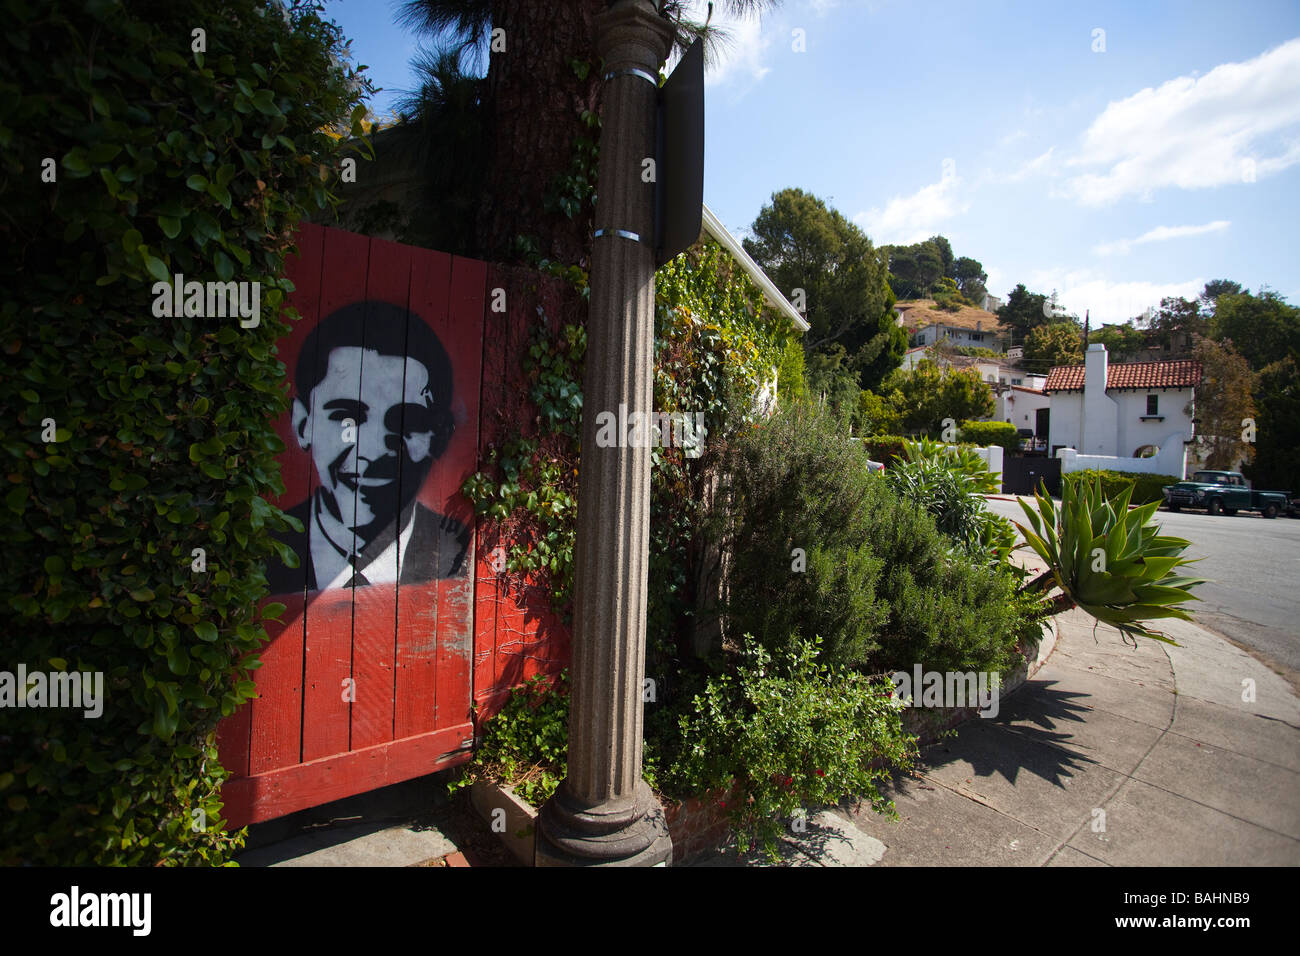 Stencil graffiti of Barack Obama on the gate of a garden, Hollywood, California, USA - Stock Image